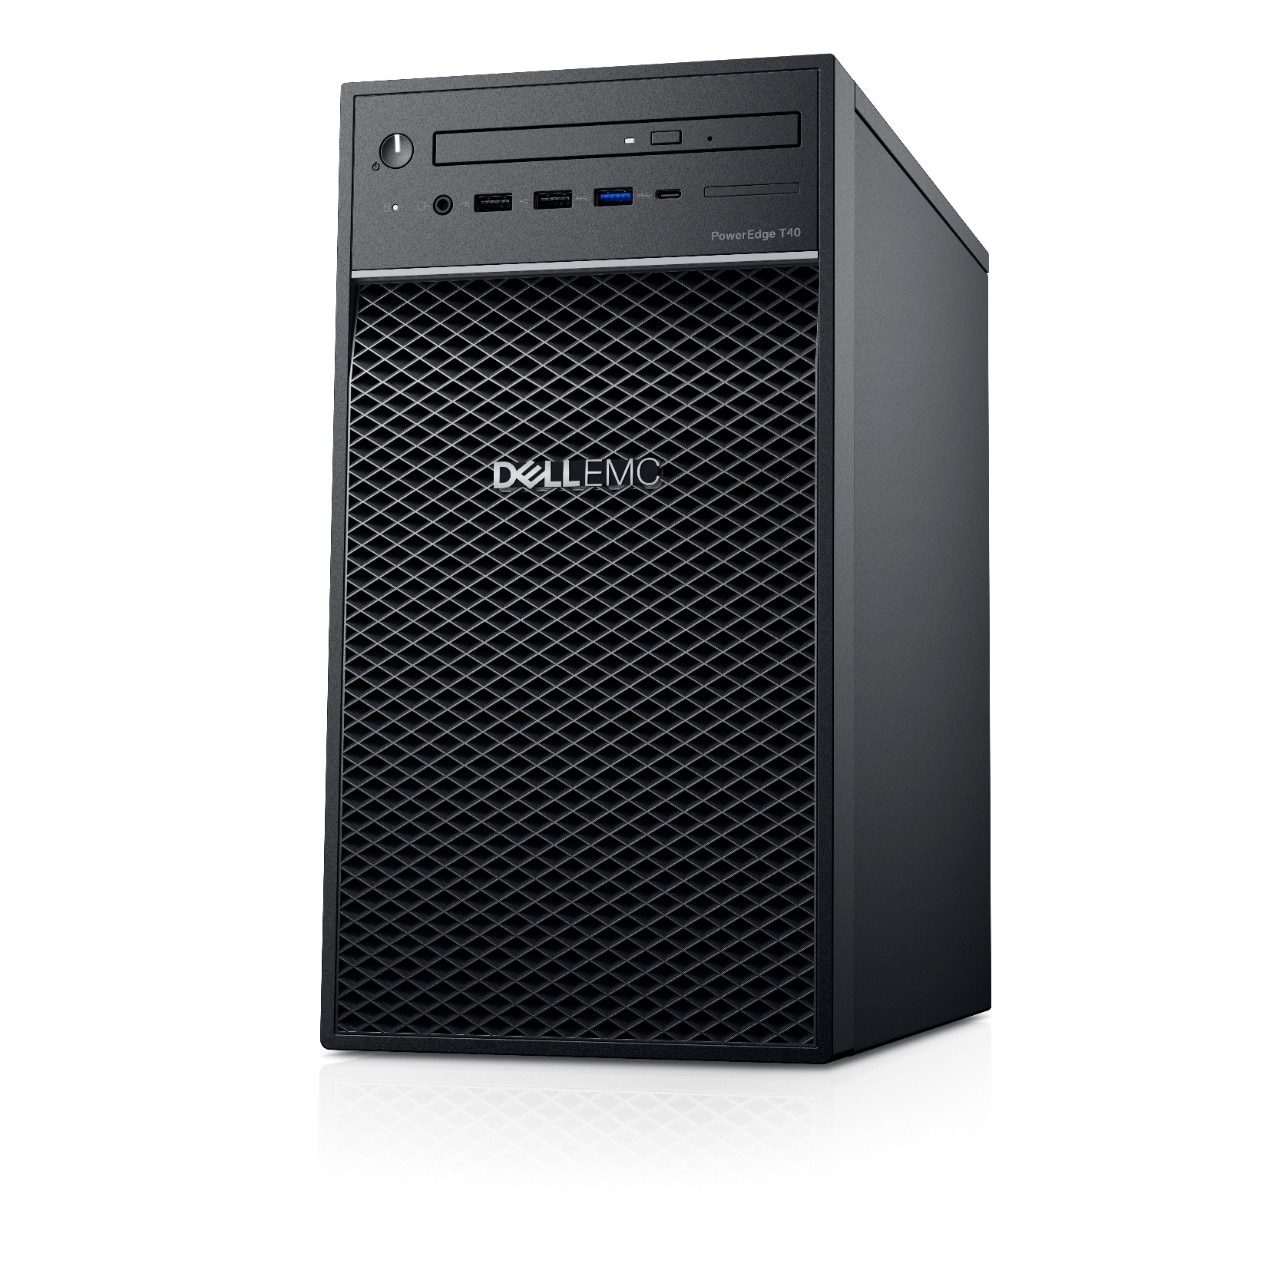 PowerEdge T40 Server